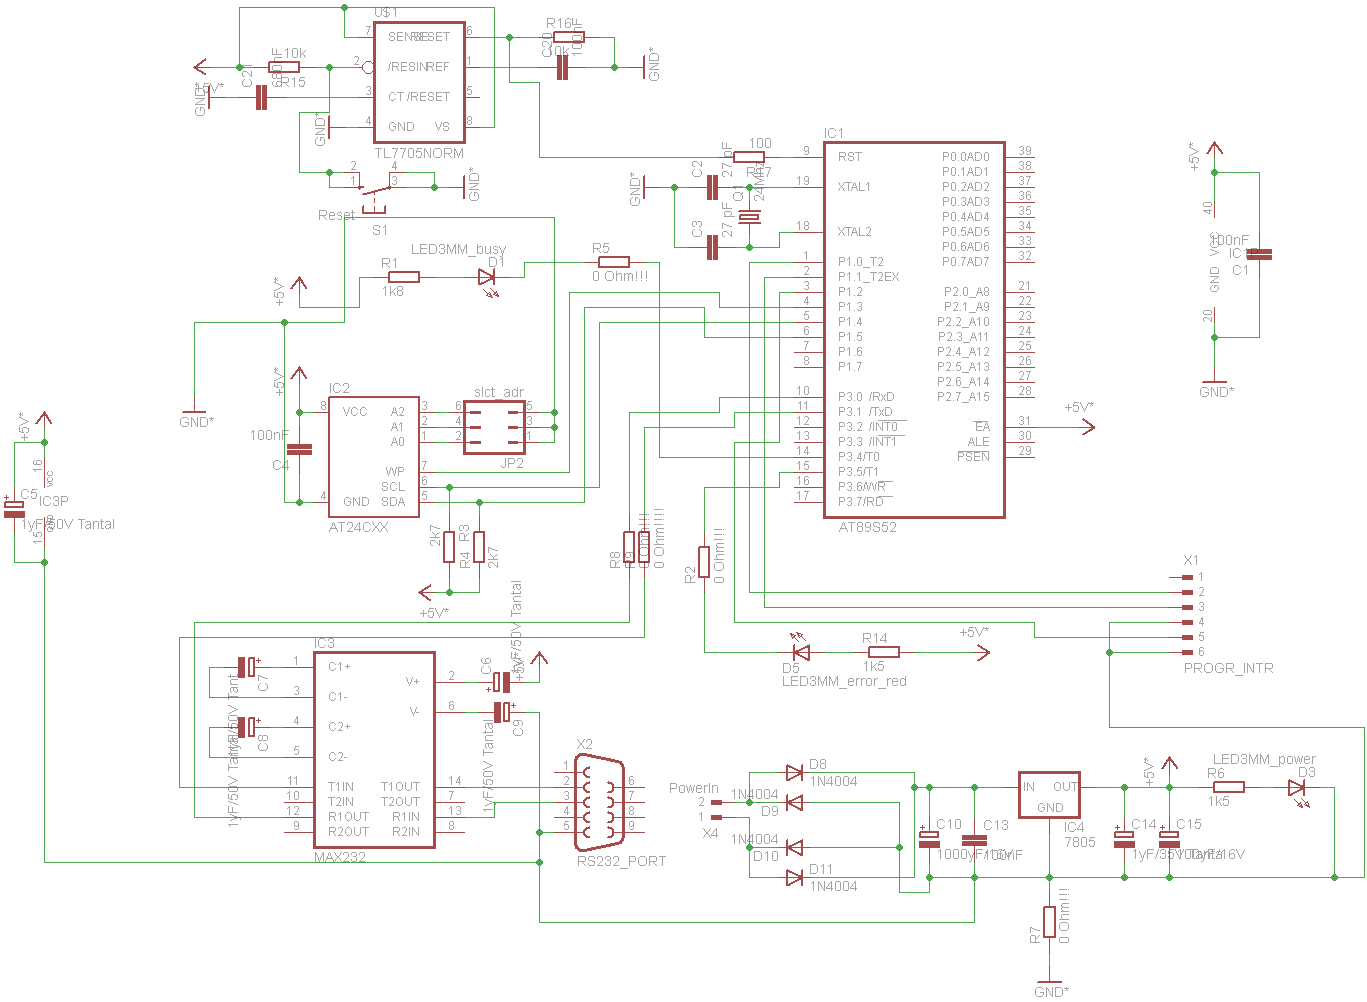 Index Diagram The Complete Wiring Of Circuit Is Shown Below By Clicking On Schematic It Can Be Seen In Full Size After I Have Tested This Configuration Decided To Make A Pcb Design Eagle